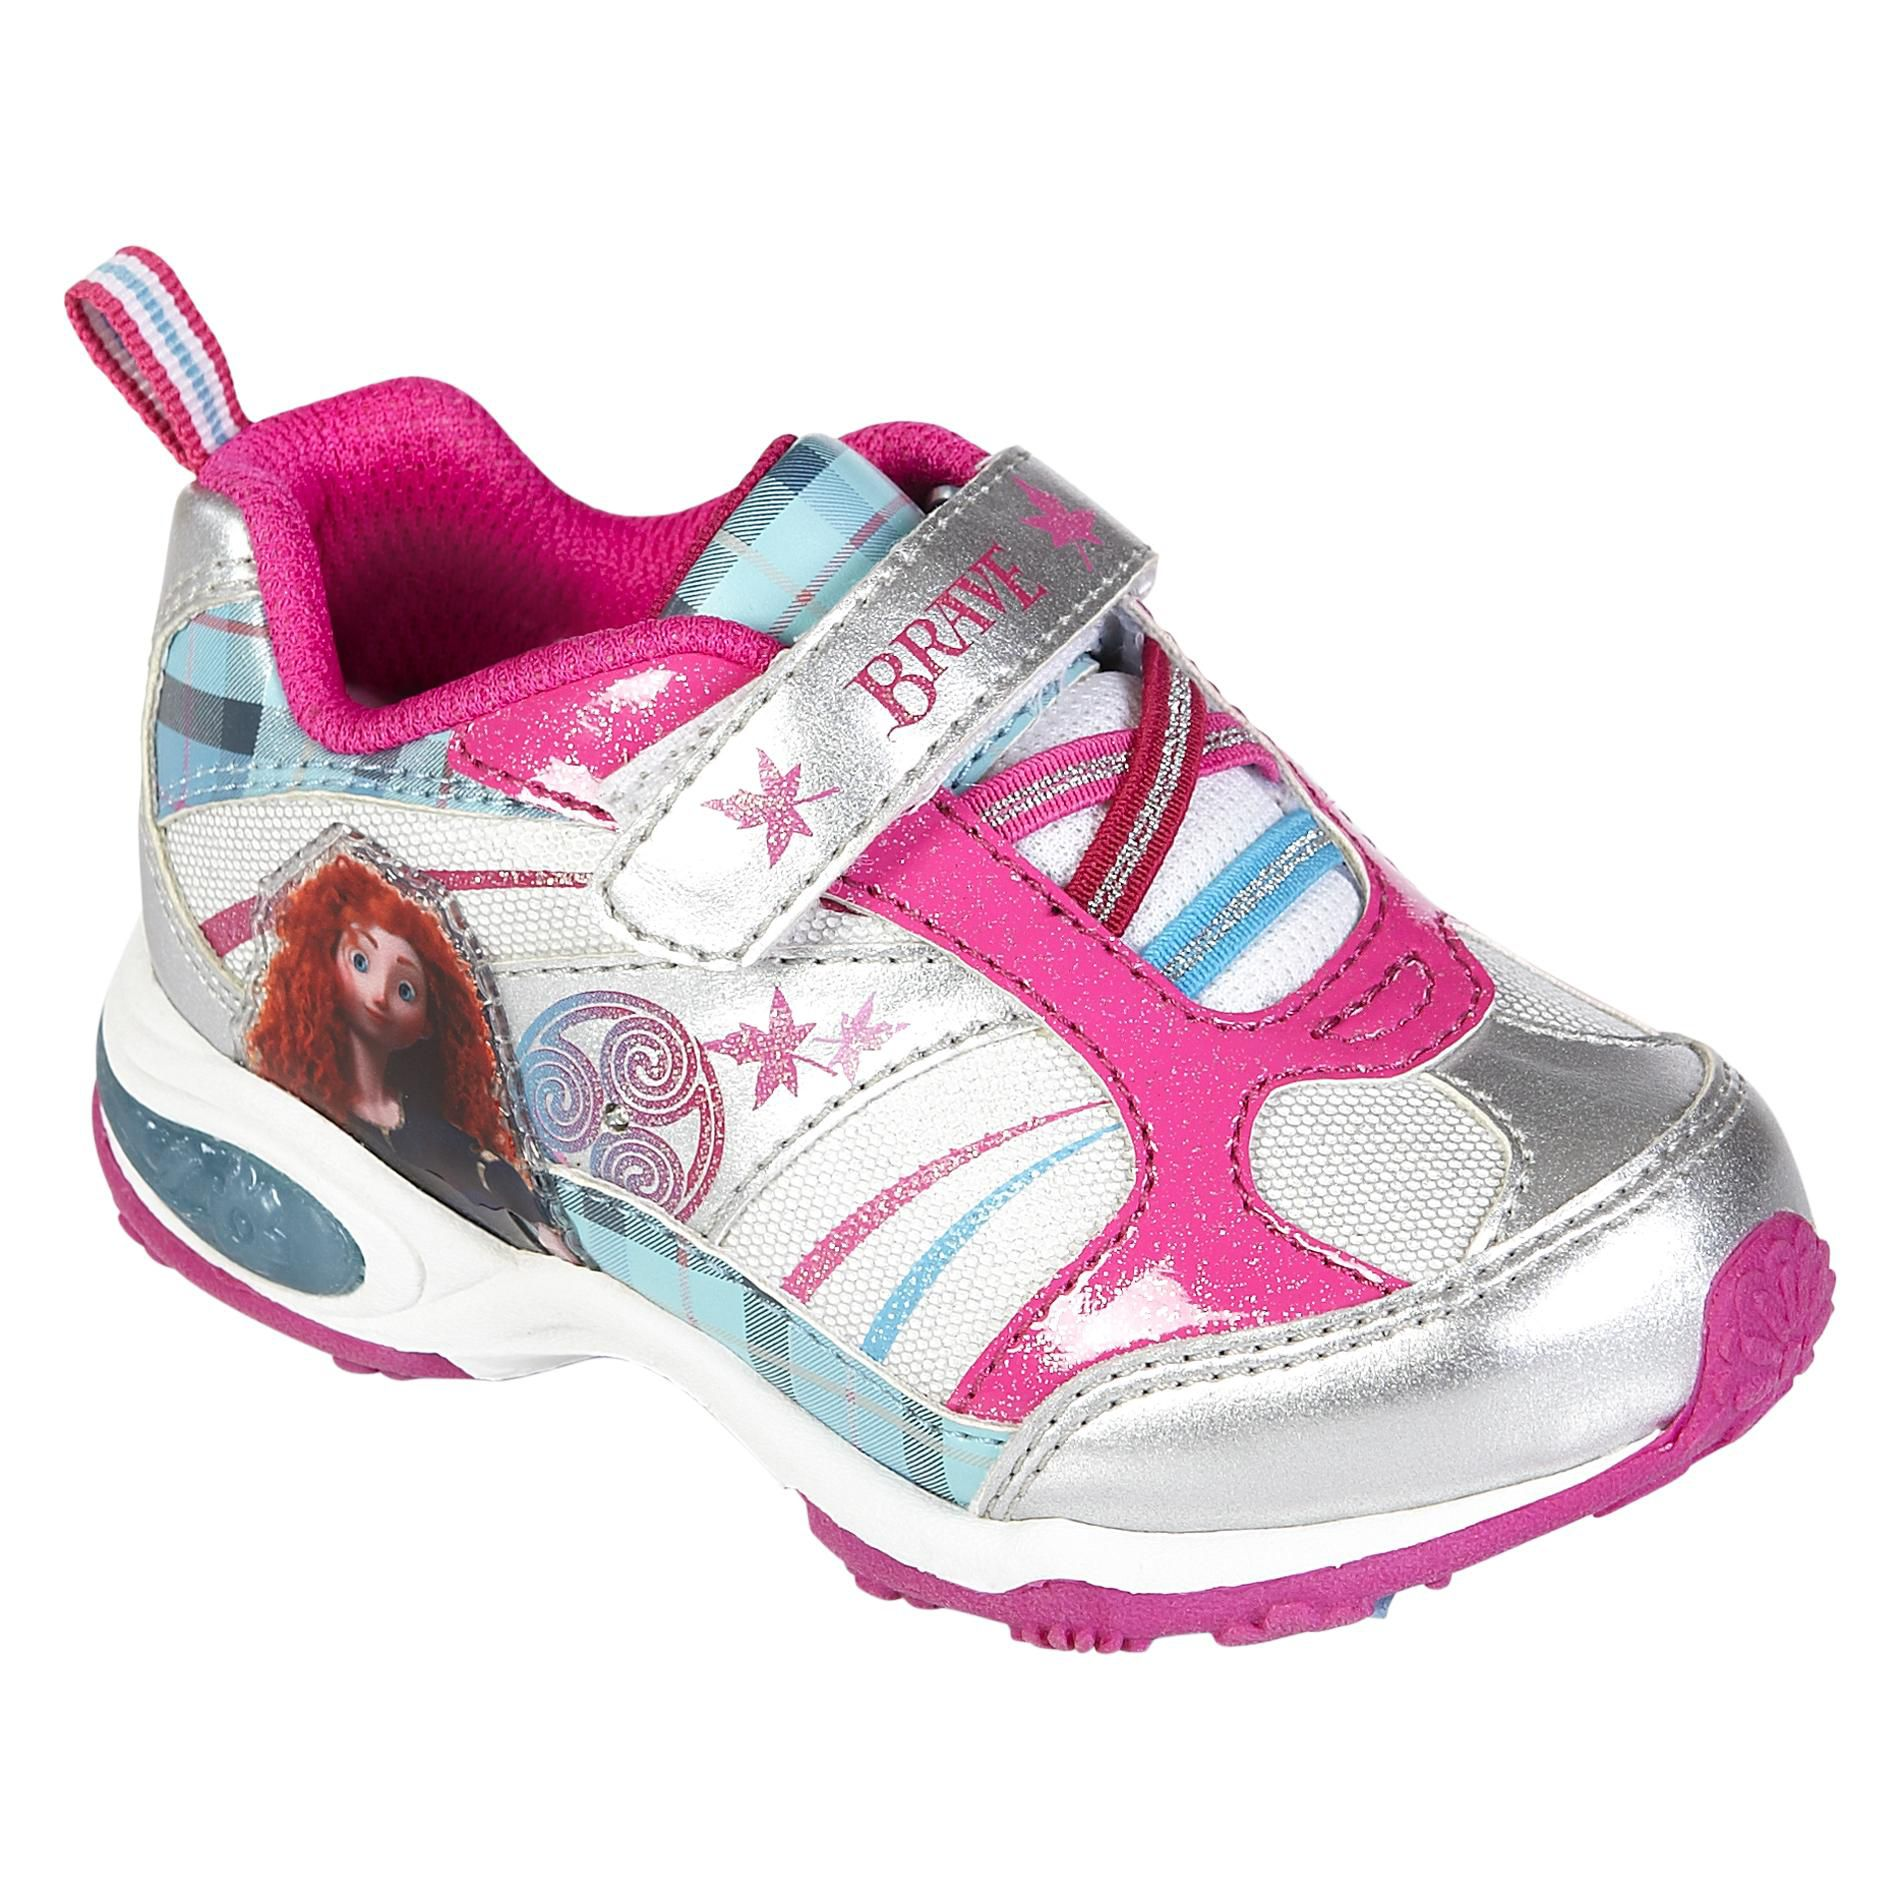 Toddler Girl's Brave Princess Athletic Shoe -